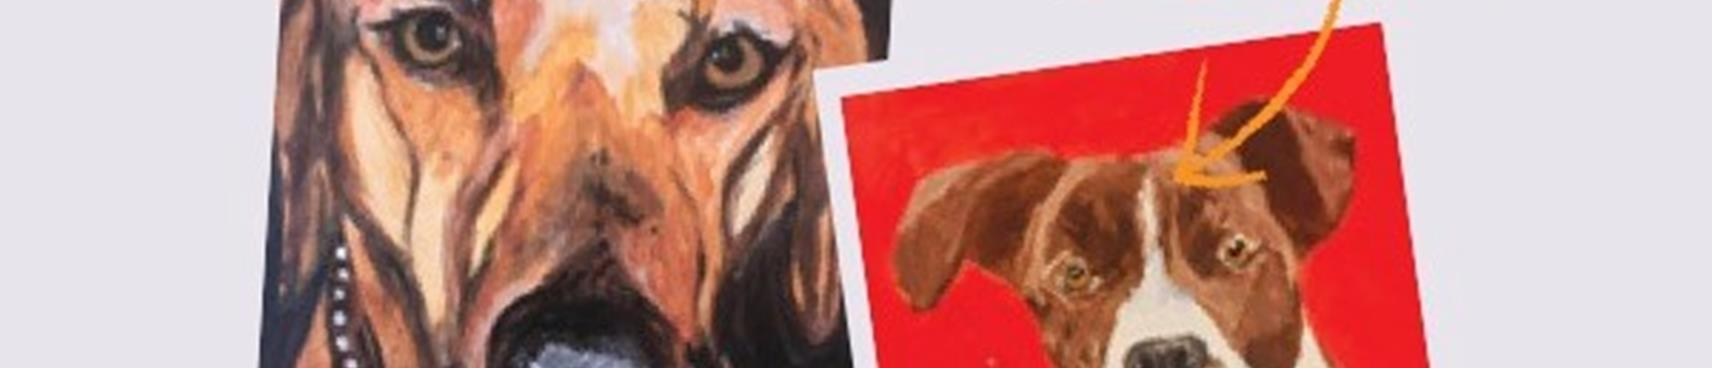 Purchase Tickets to Craft Bar - Paint Your Pet!!! at Jonathan Edwards Winery on CellarPass